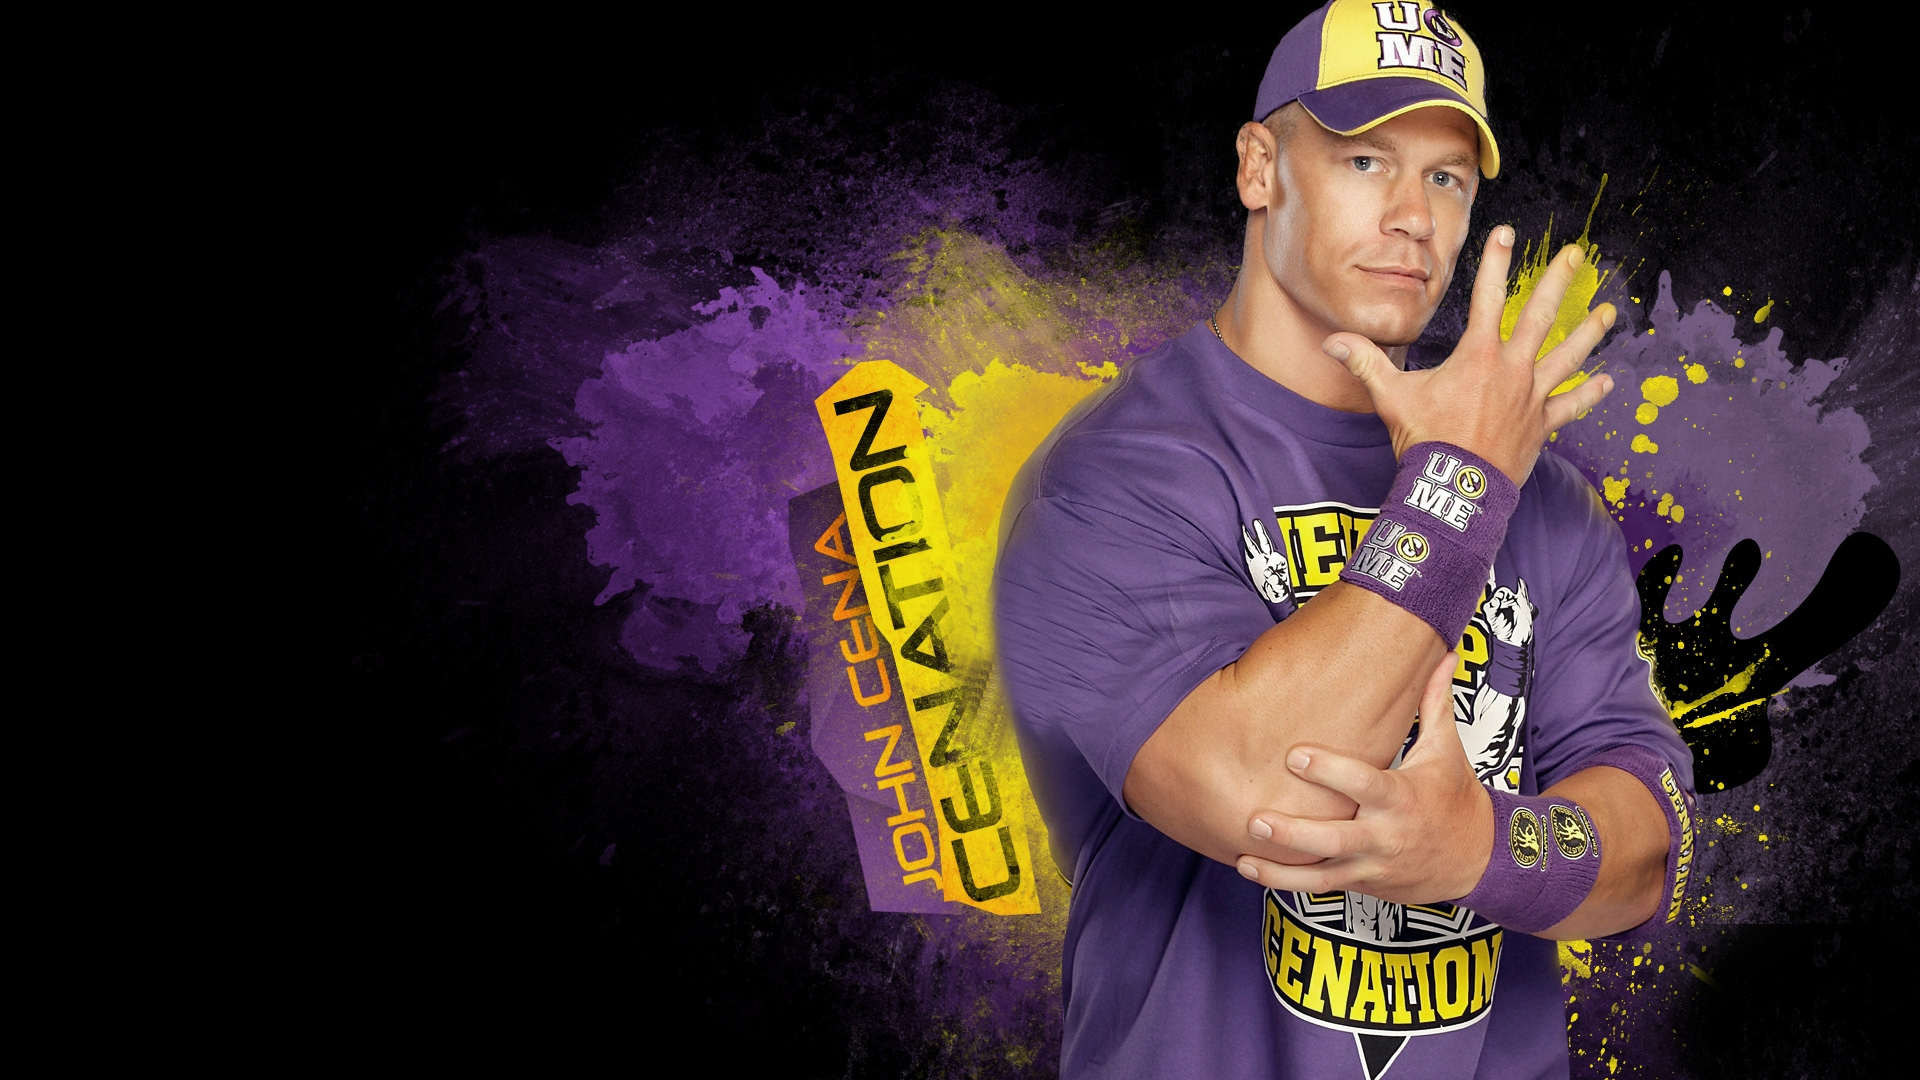 John Cena WWe Superstar Wallpaper HD Download 1920x1080